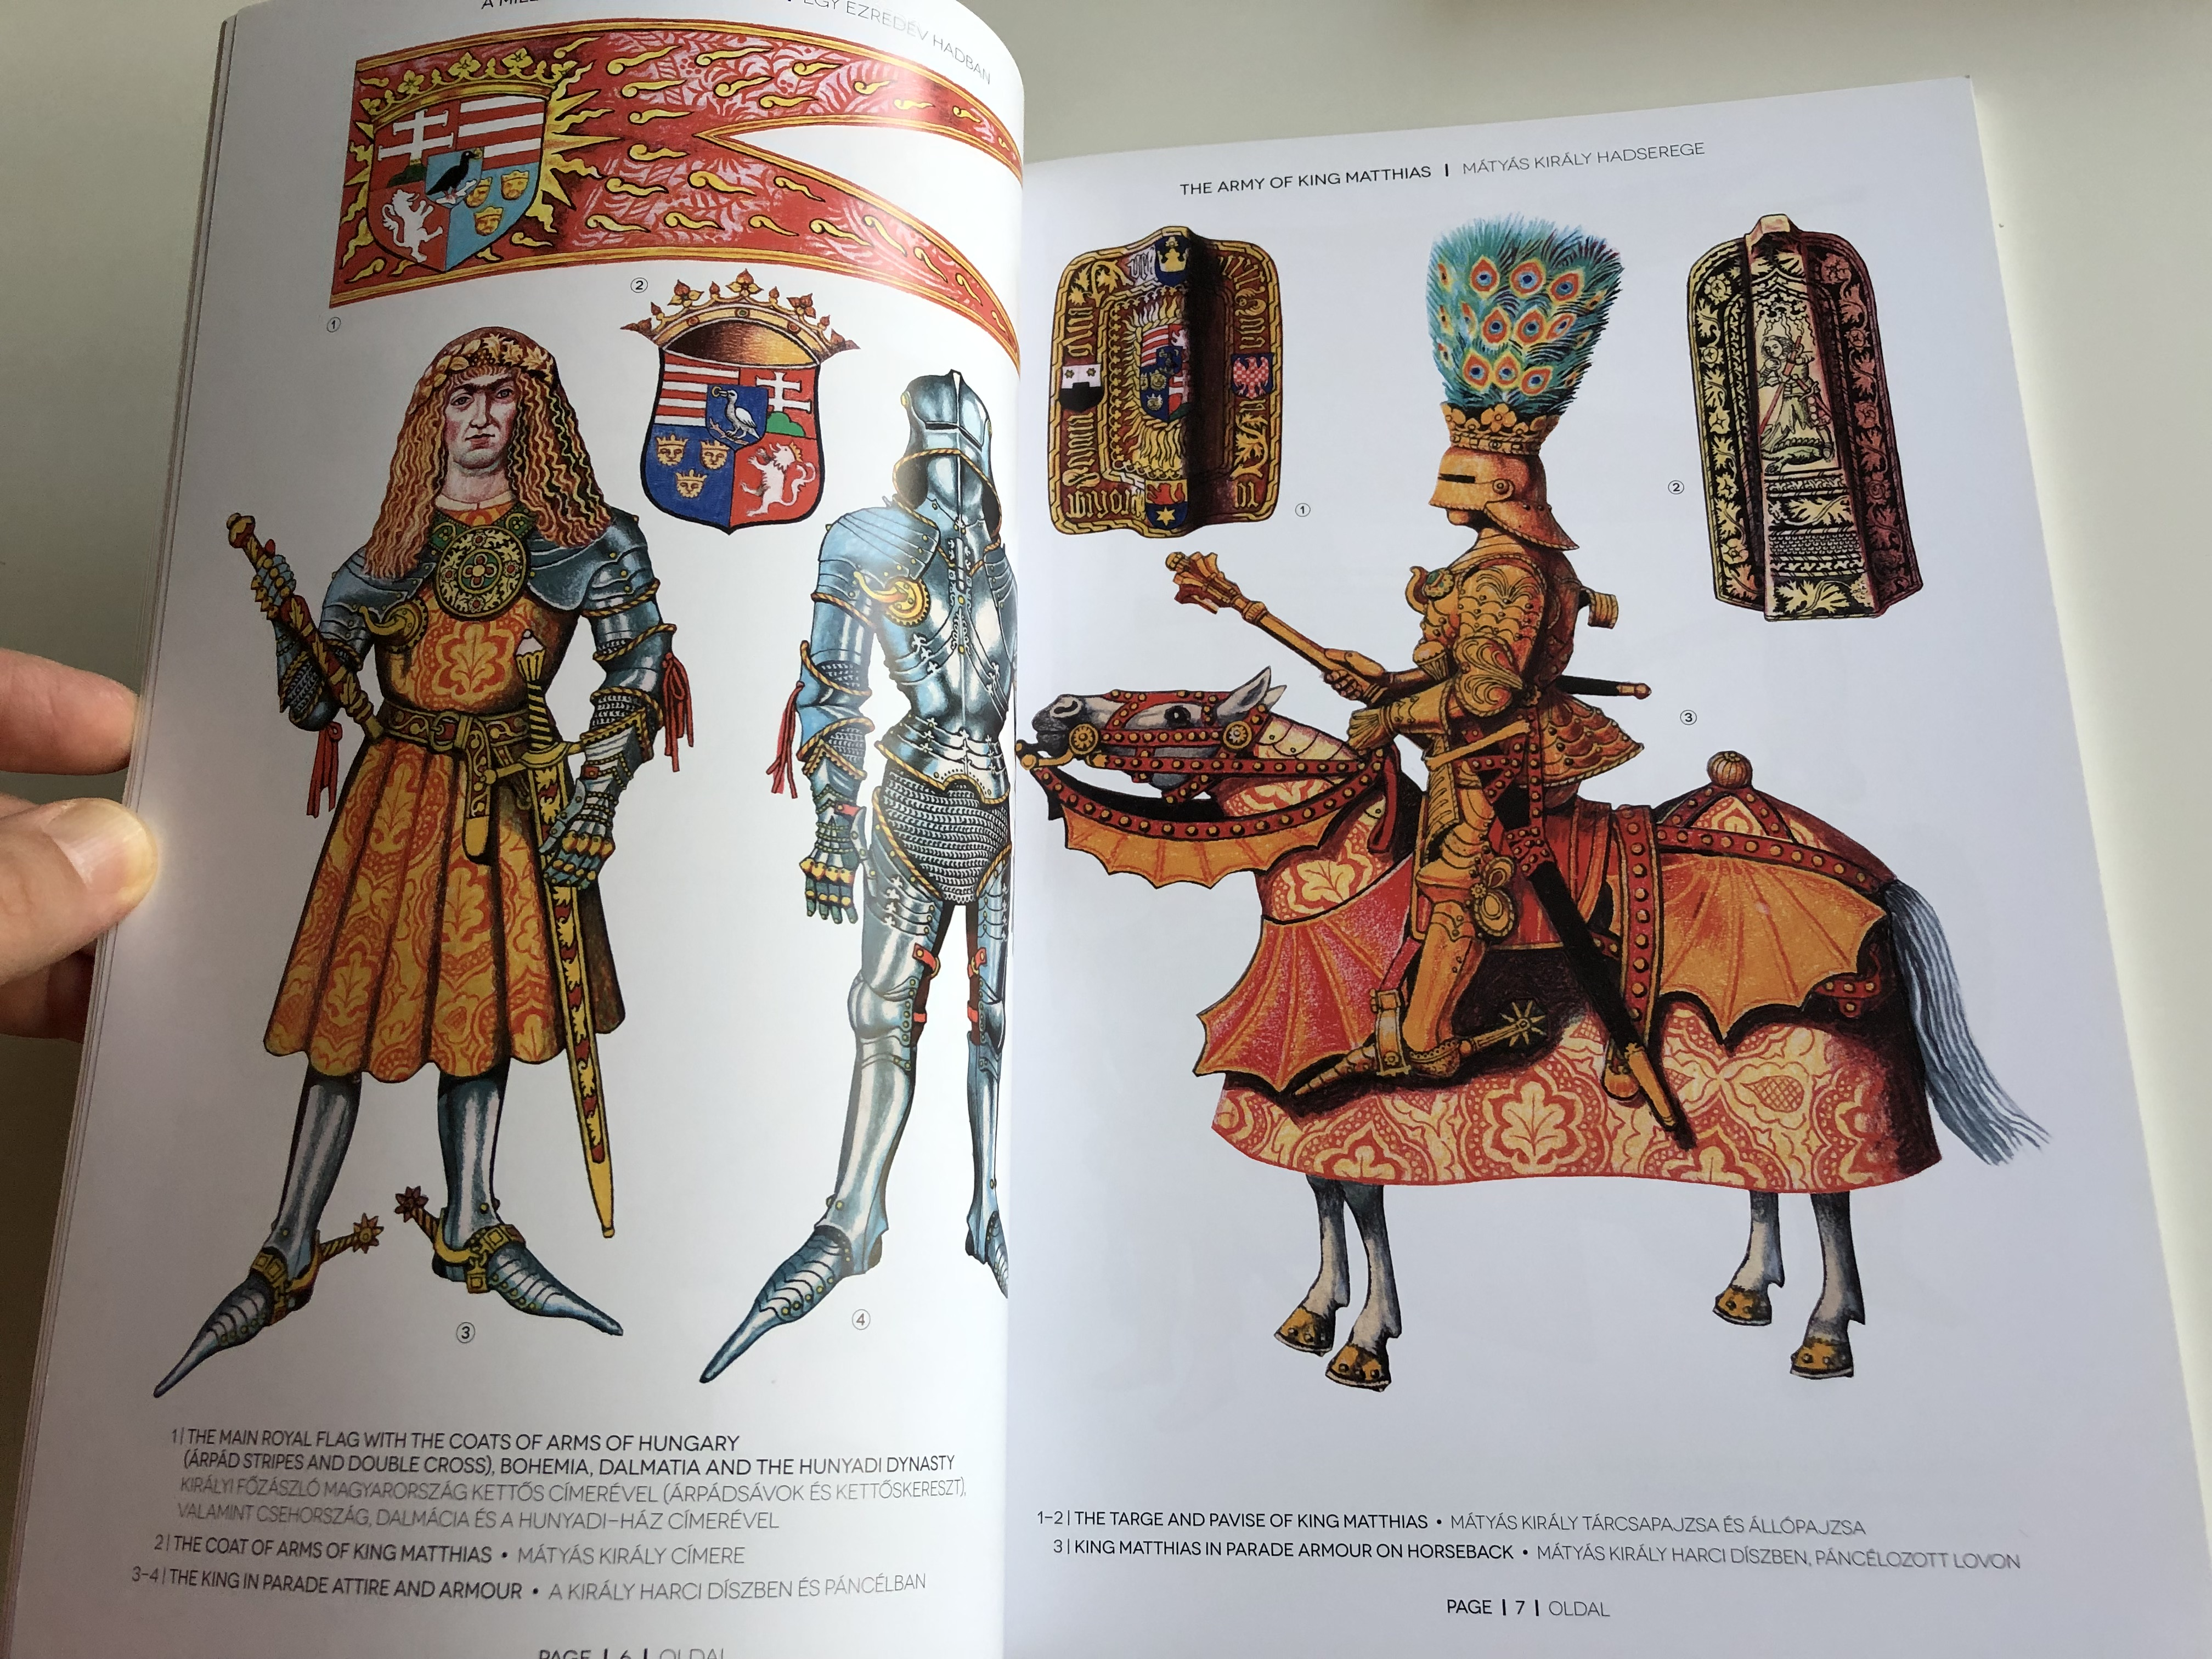 the-army-of-king-matthias-1458-1526-by-gy-z-somogyi-m-ty-s-kir-ly-hadserege-1458-1526-a-millenium-in-the-military-egy-ezred-v-hadban-paperback-2013-hm-zr-nyi-3-.jpg